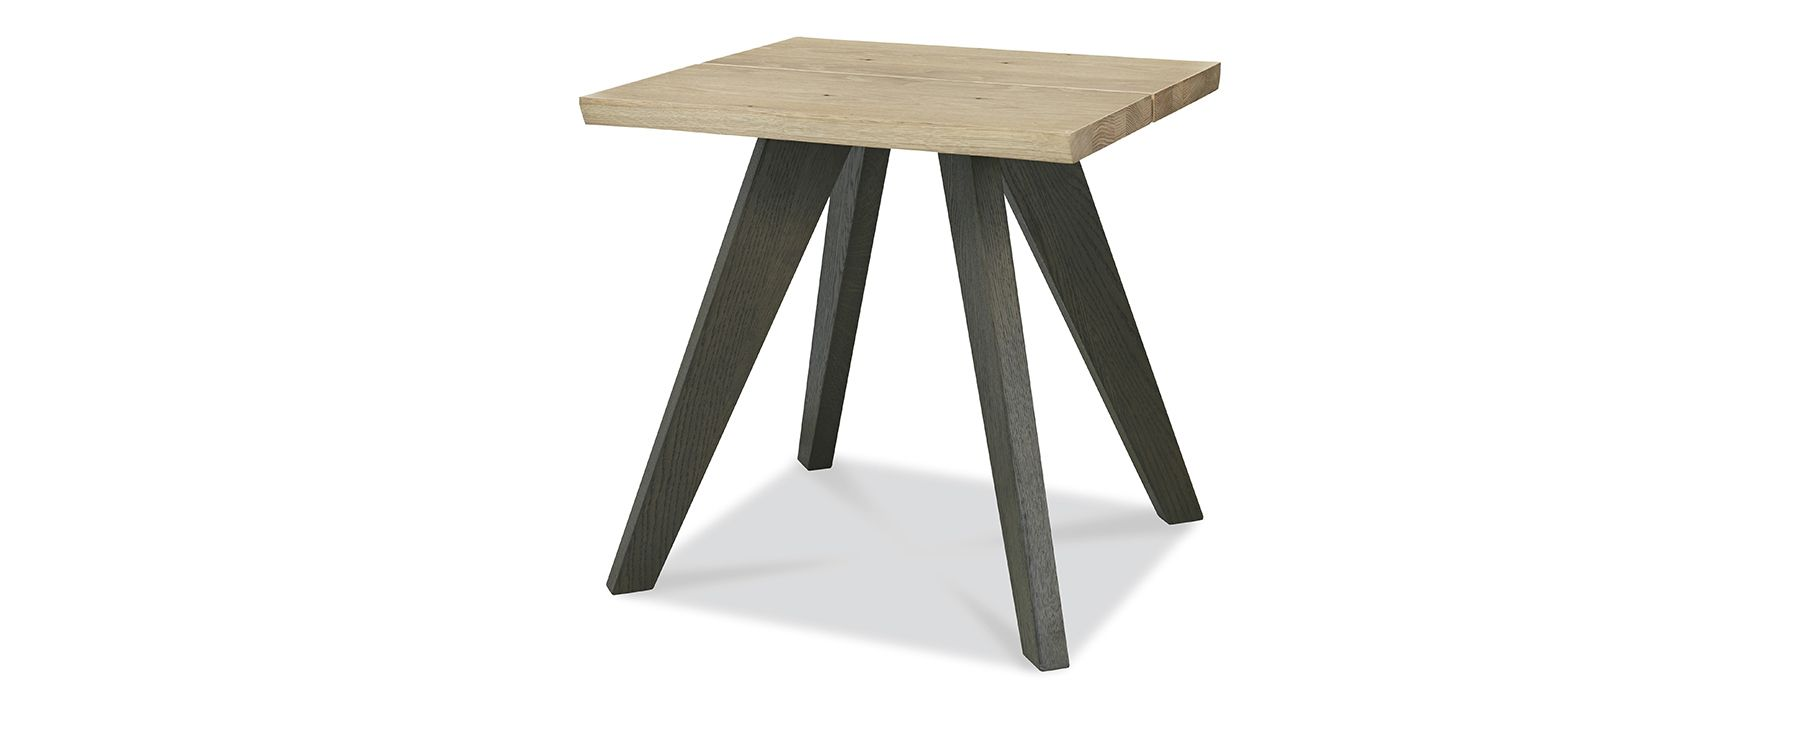 CARELL LAMP TABLE - L55cm x D50cm xH52cm - ANGLE DETAIL